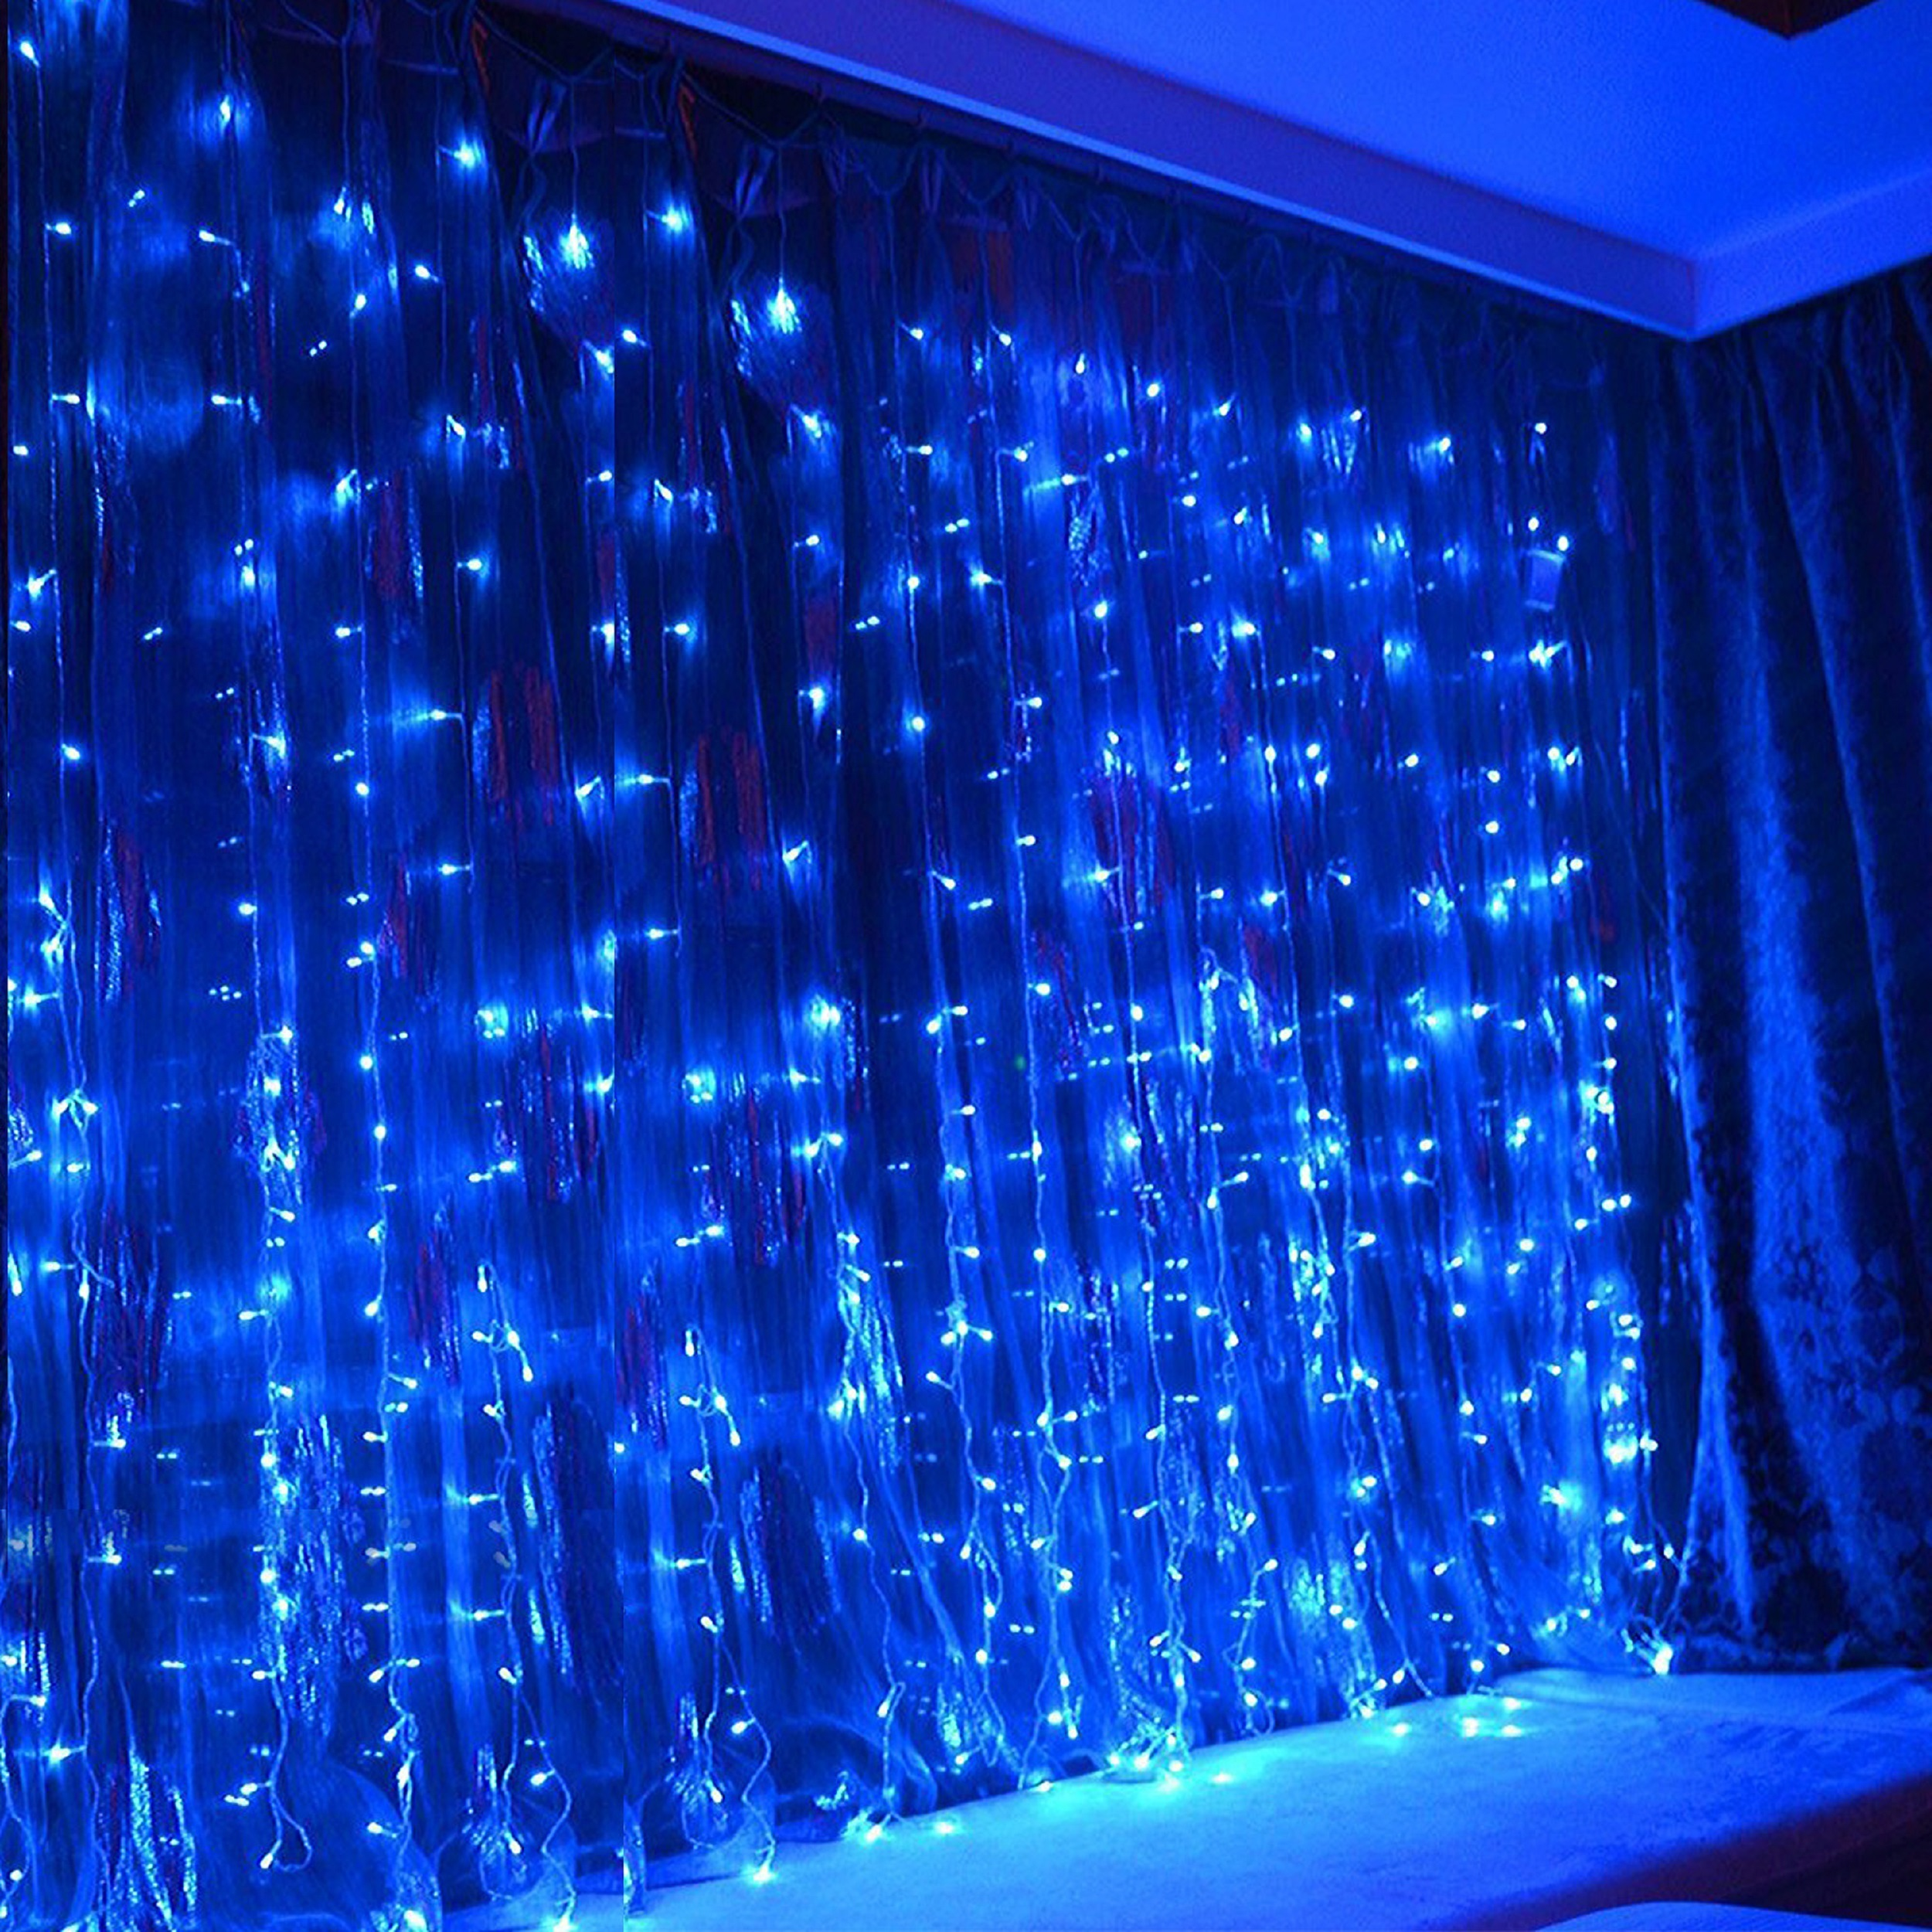 TORCHSTAR 9.8ft x 9.8ft LED Curtain Lights, Starry Christmas String Light, Indoor/Outdoor Decoration for Festival Wedding Party Living Room Bedroom, Blue